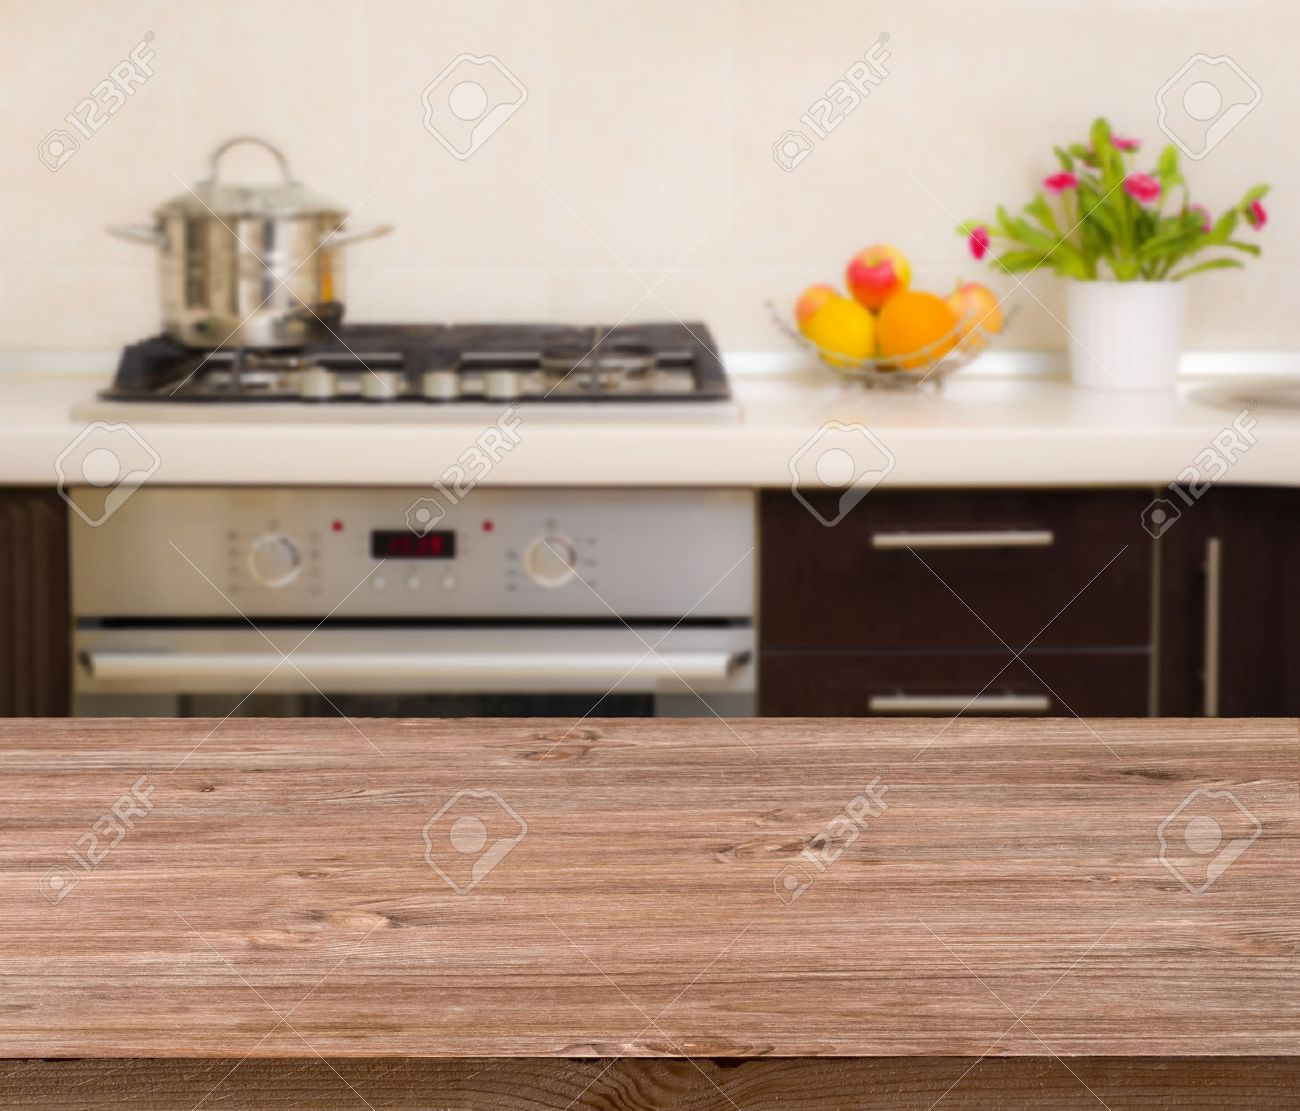 Kitchen Table Top Background kitchen table images & stock pictures. royalty free kitchen table